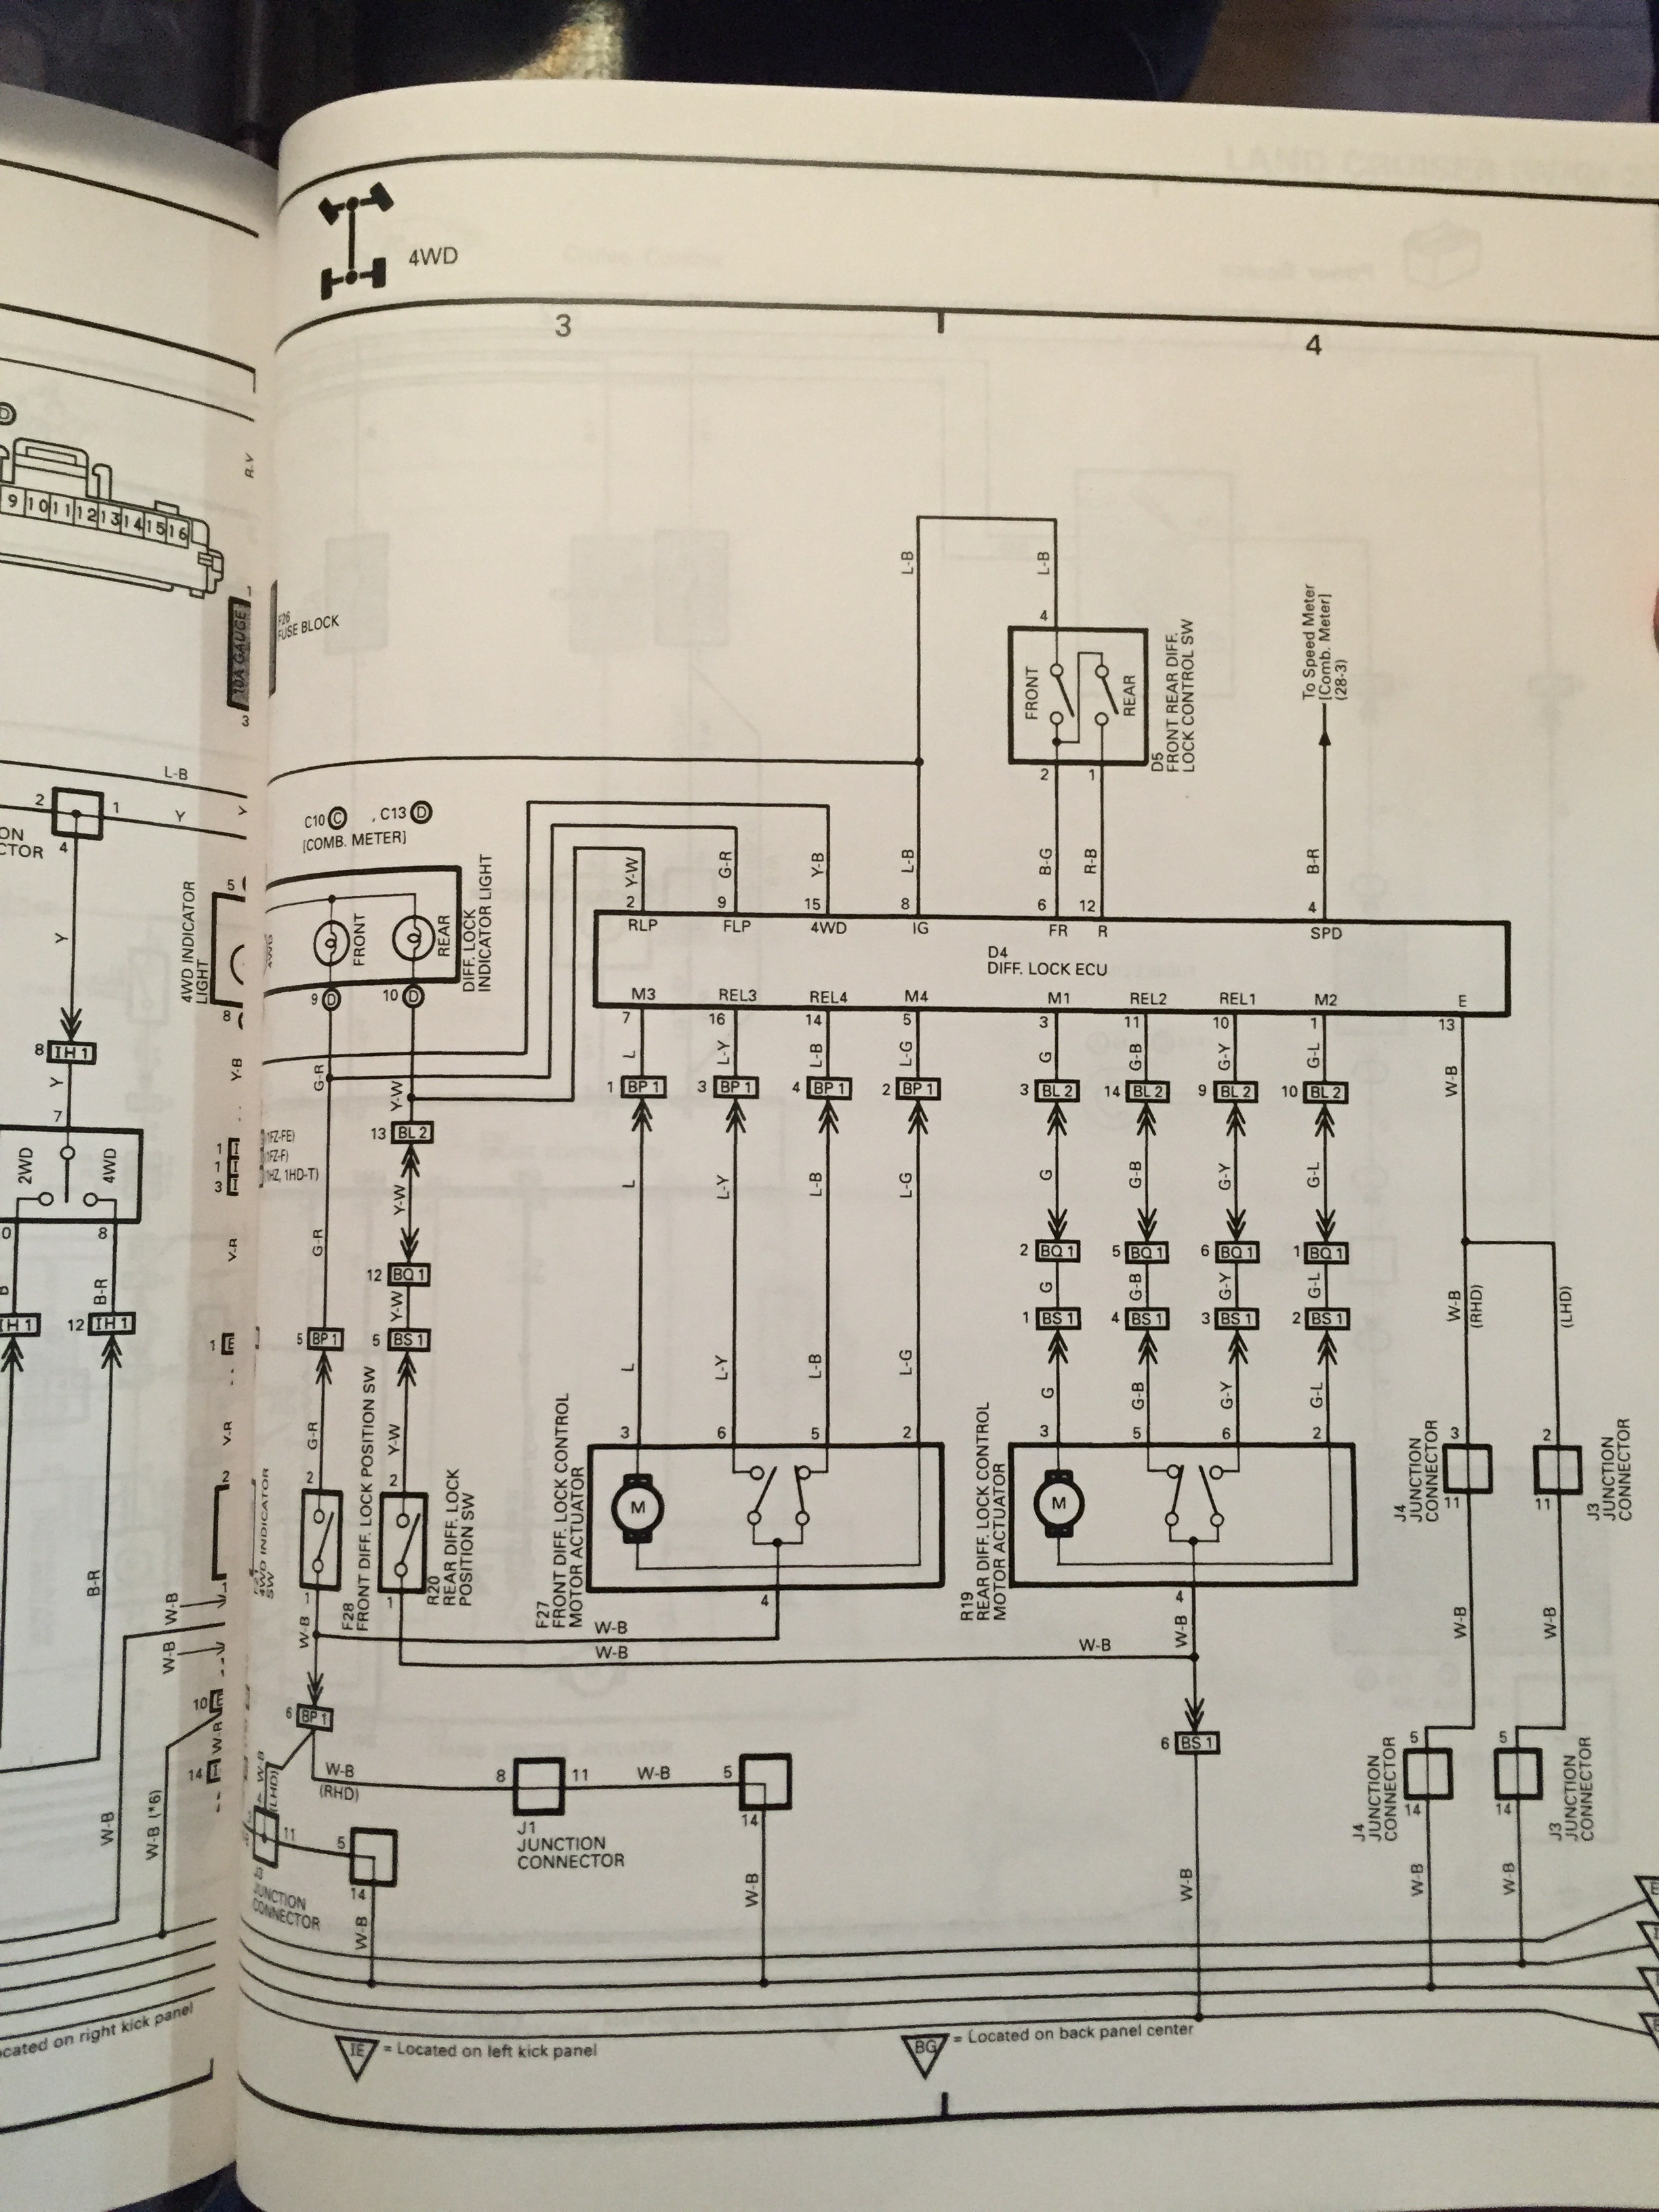 Electrical Wiring Diagrams Toyota Land Cruiser Vdj79 Data Diagram Example Rh 162 212 157 63 2005 Pt